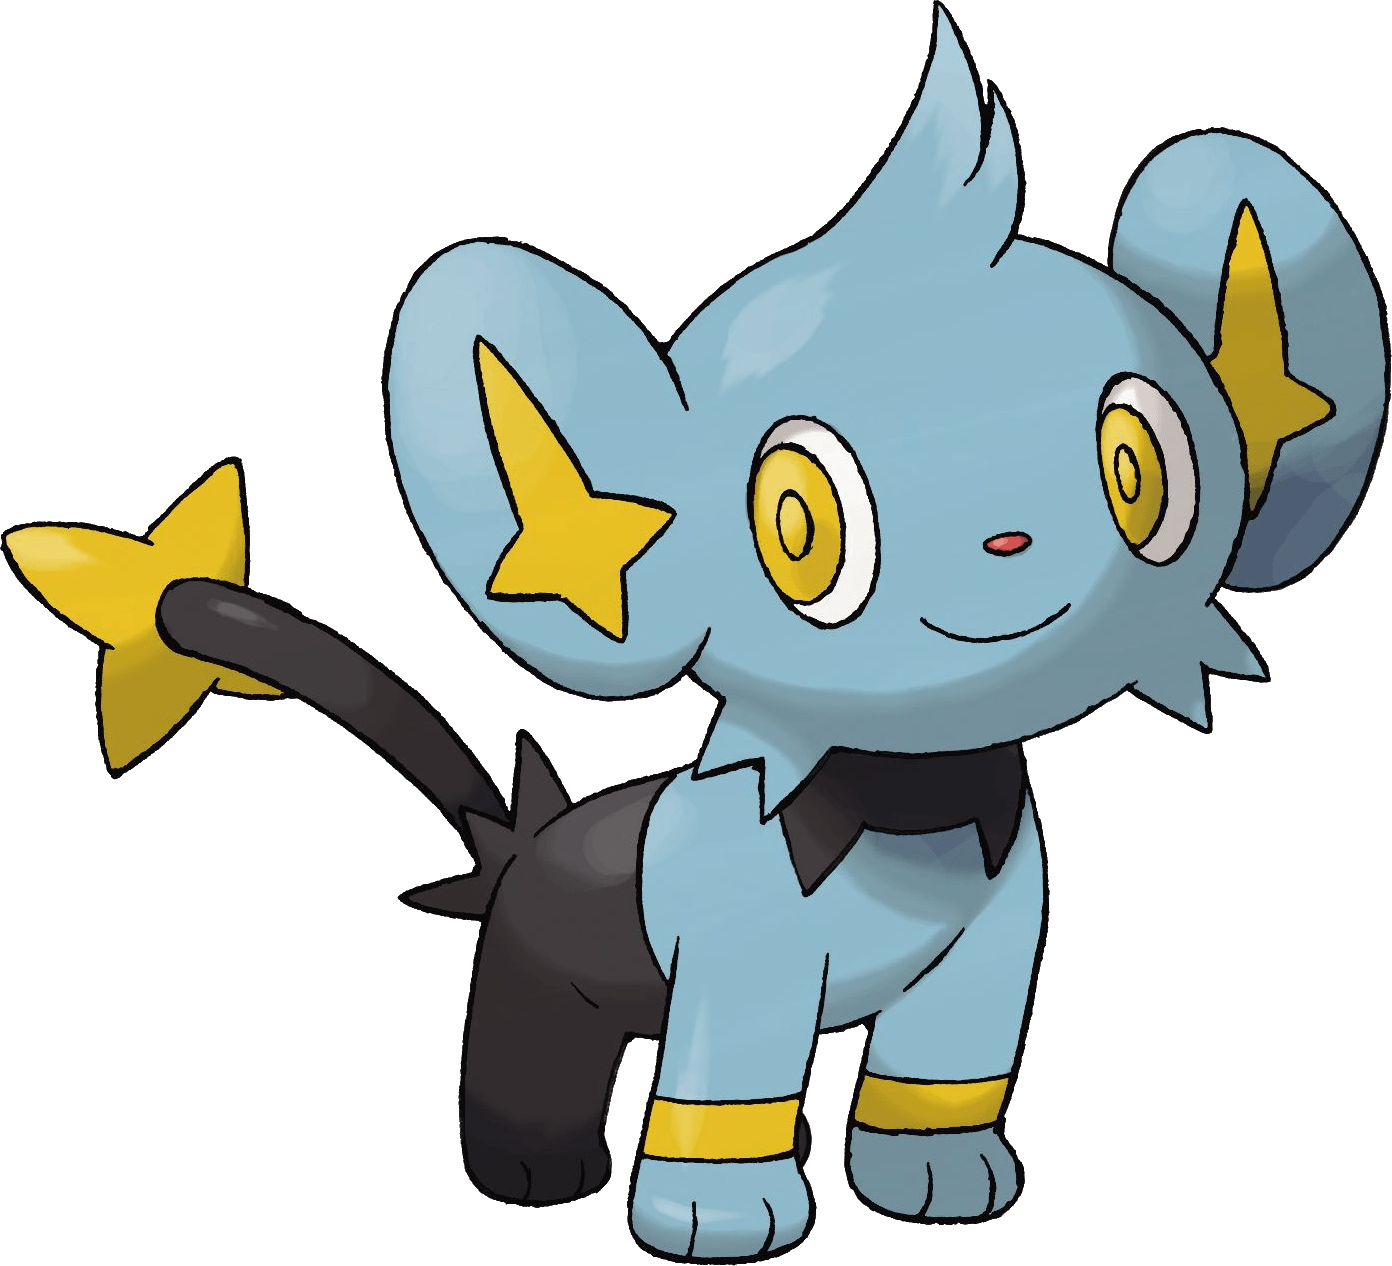 Shinx screenshots, images and pictures - Giant Bomb